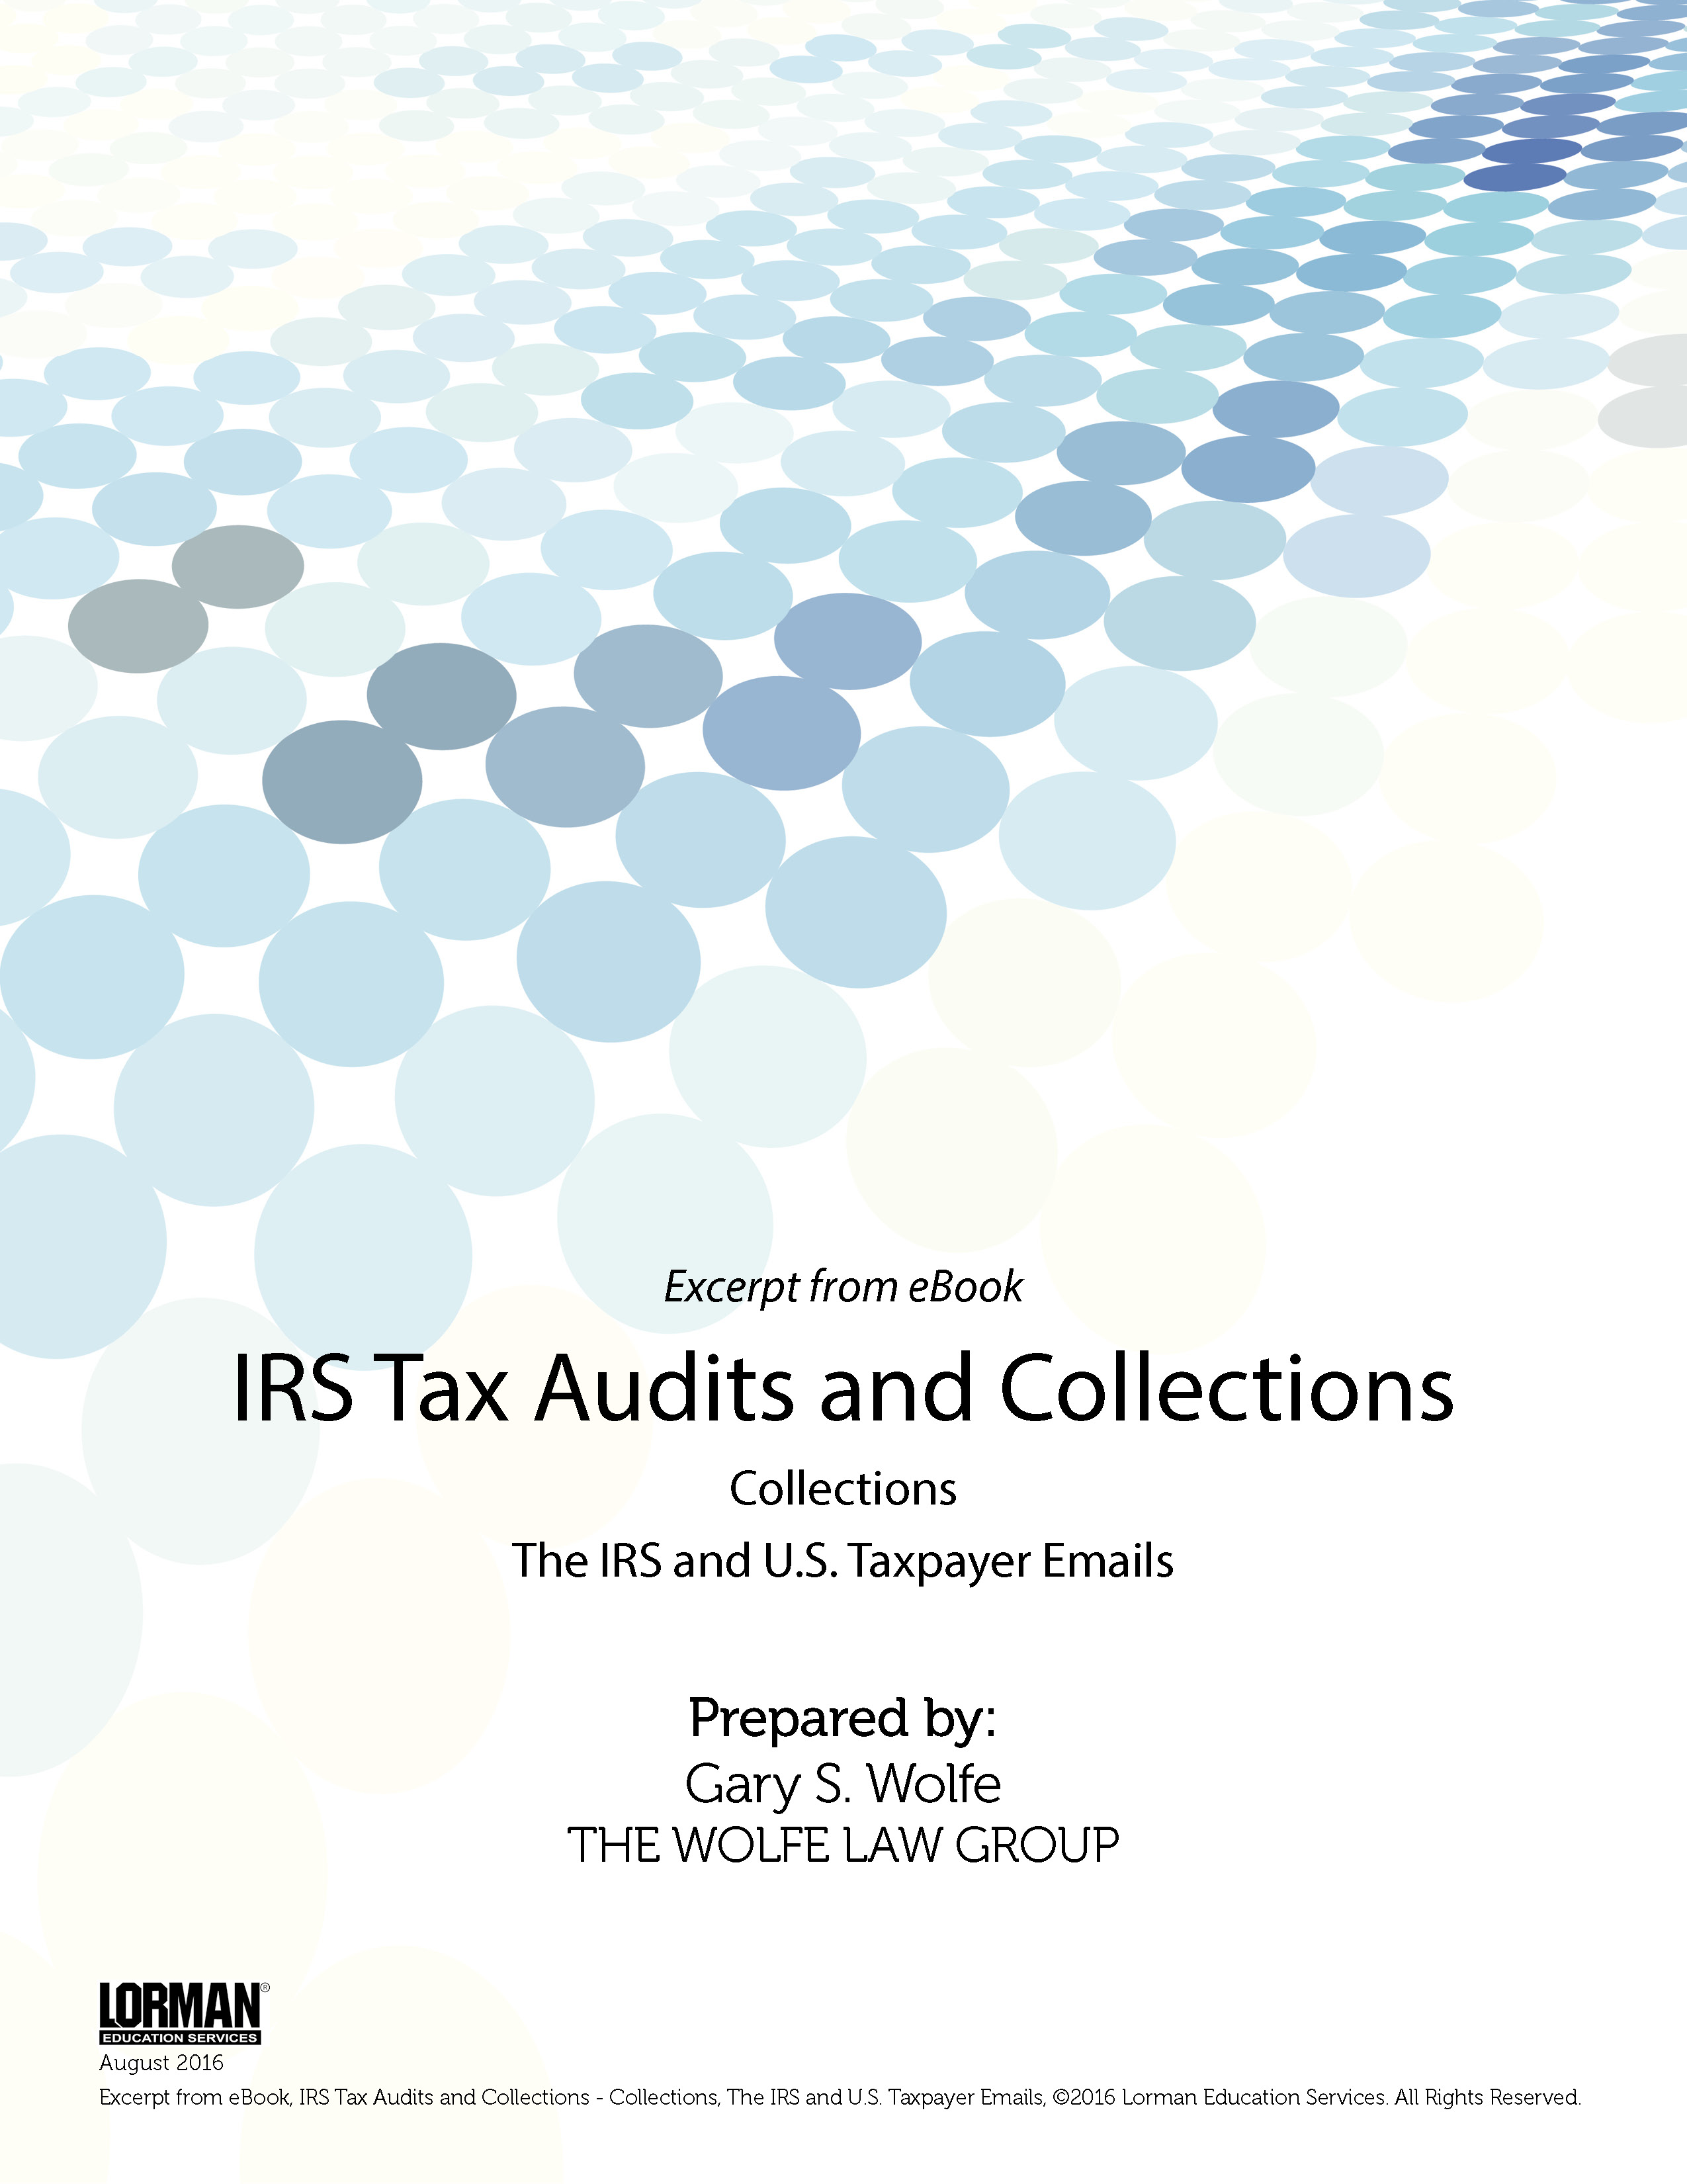 IRS Tax Audits and Collections: Collections, The IRS and U.S. Taxpayer Emails